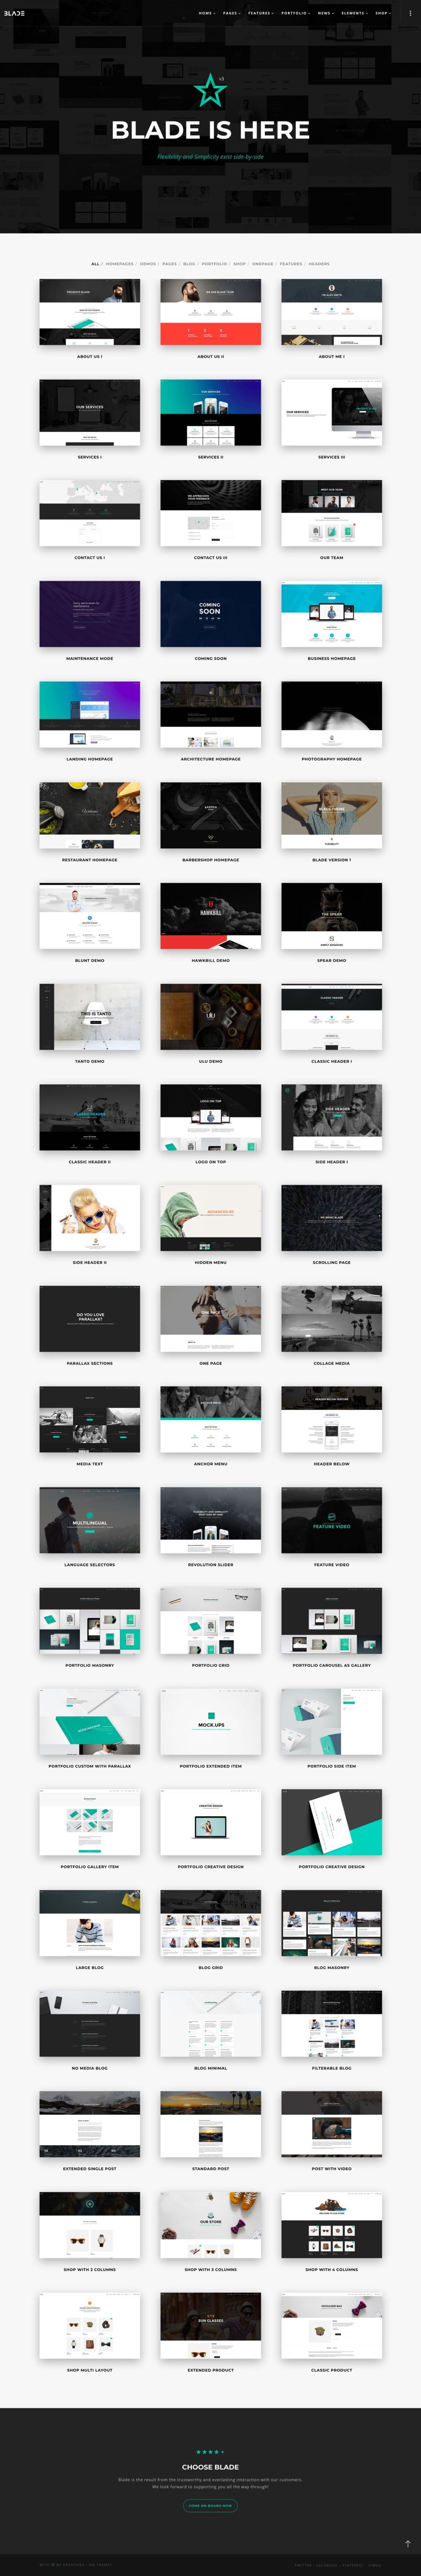 Greatives Premium WordPress themes, Blade theme